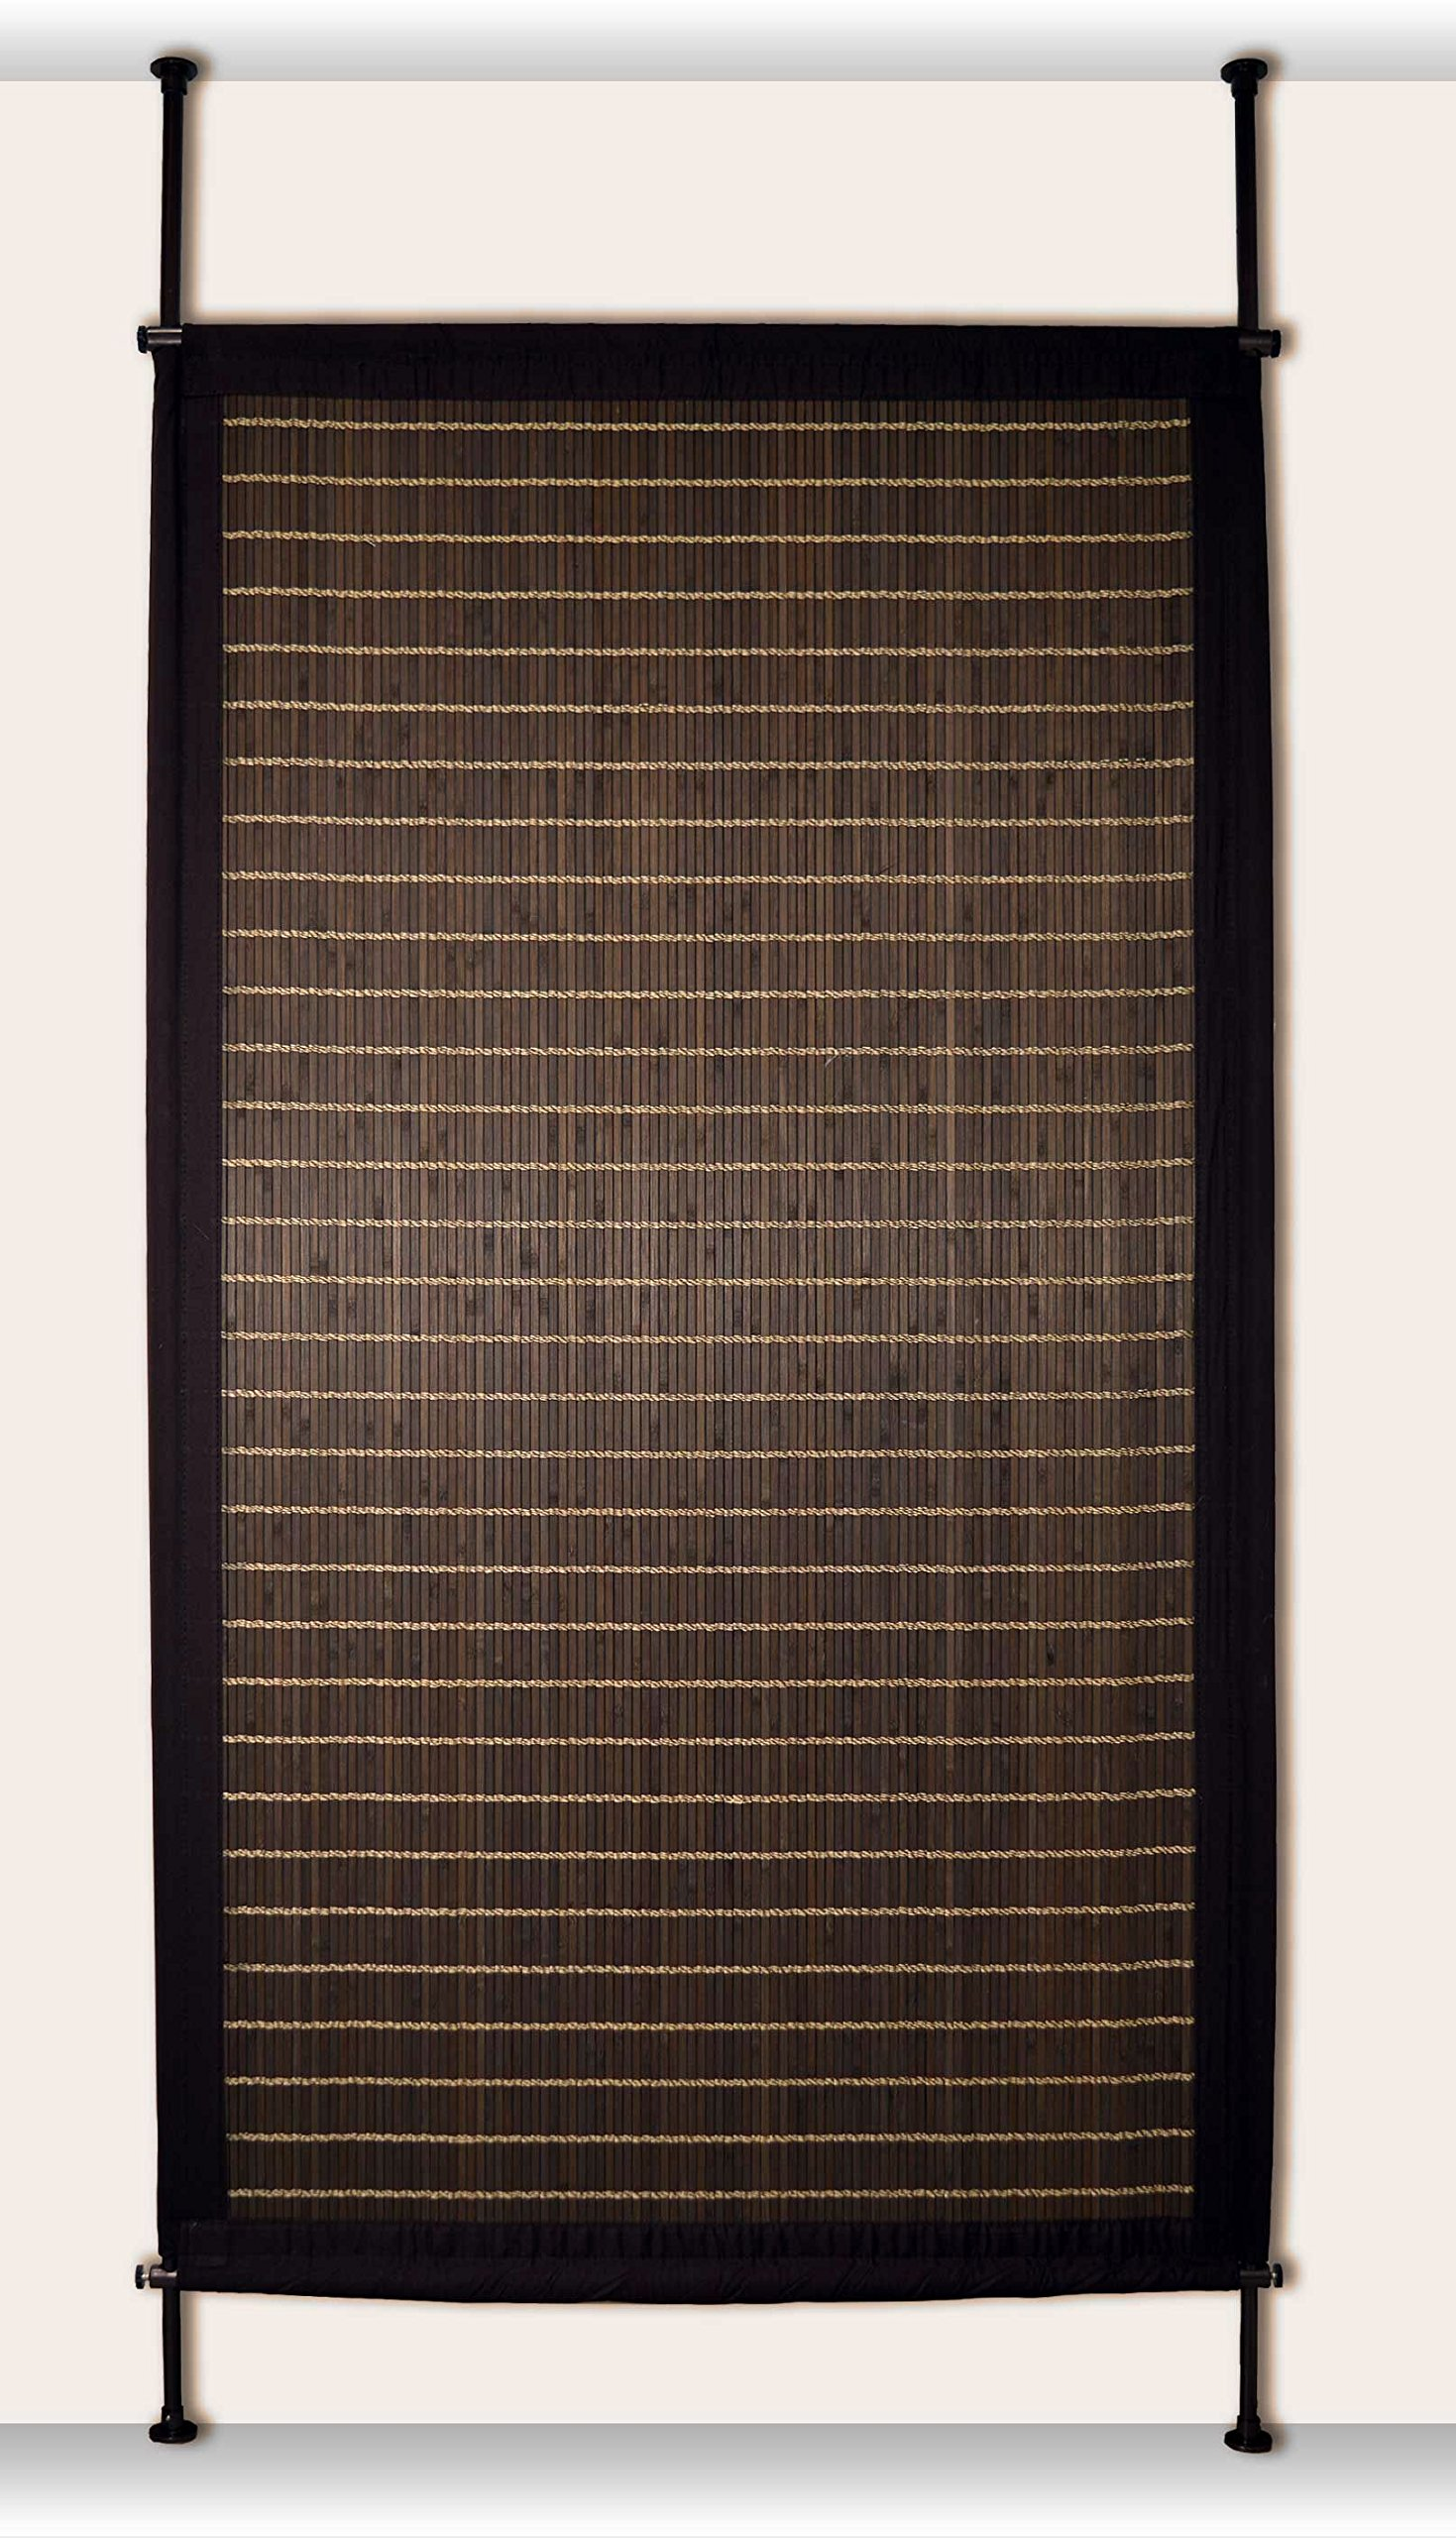 Versailles Home Fashions PP014-12 Bamboo Privacy Panel, 38'' x 68'', Walnut by Versailles Home Fashions